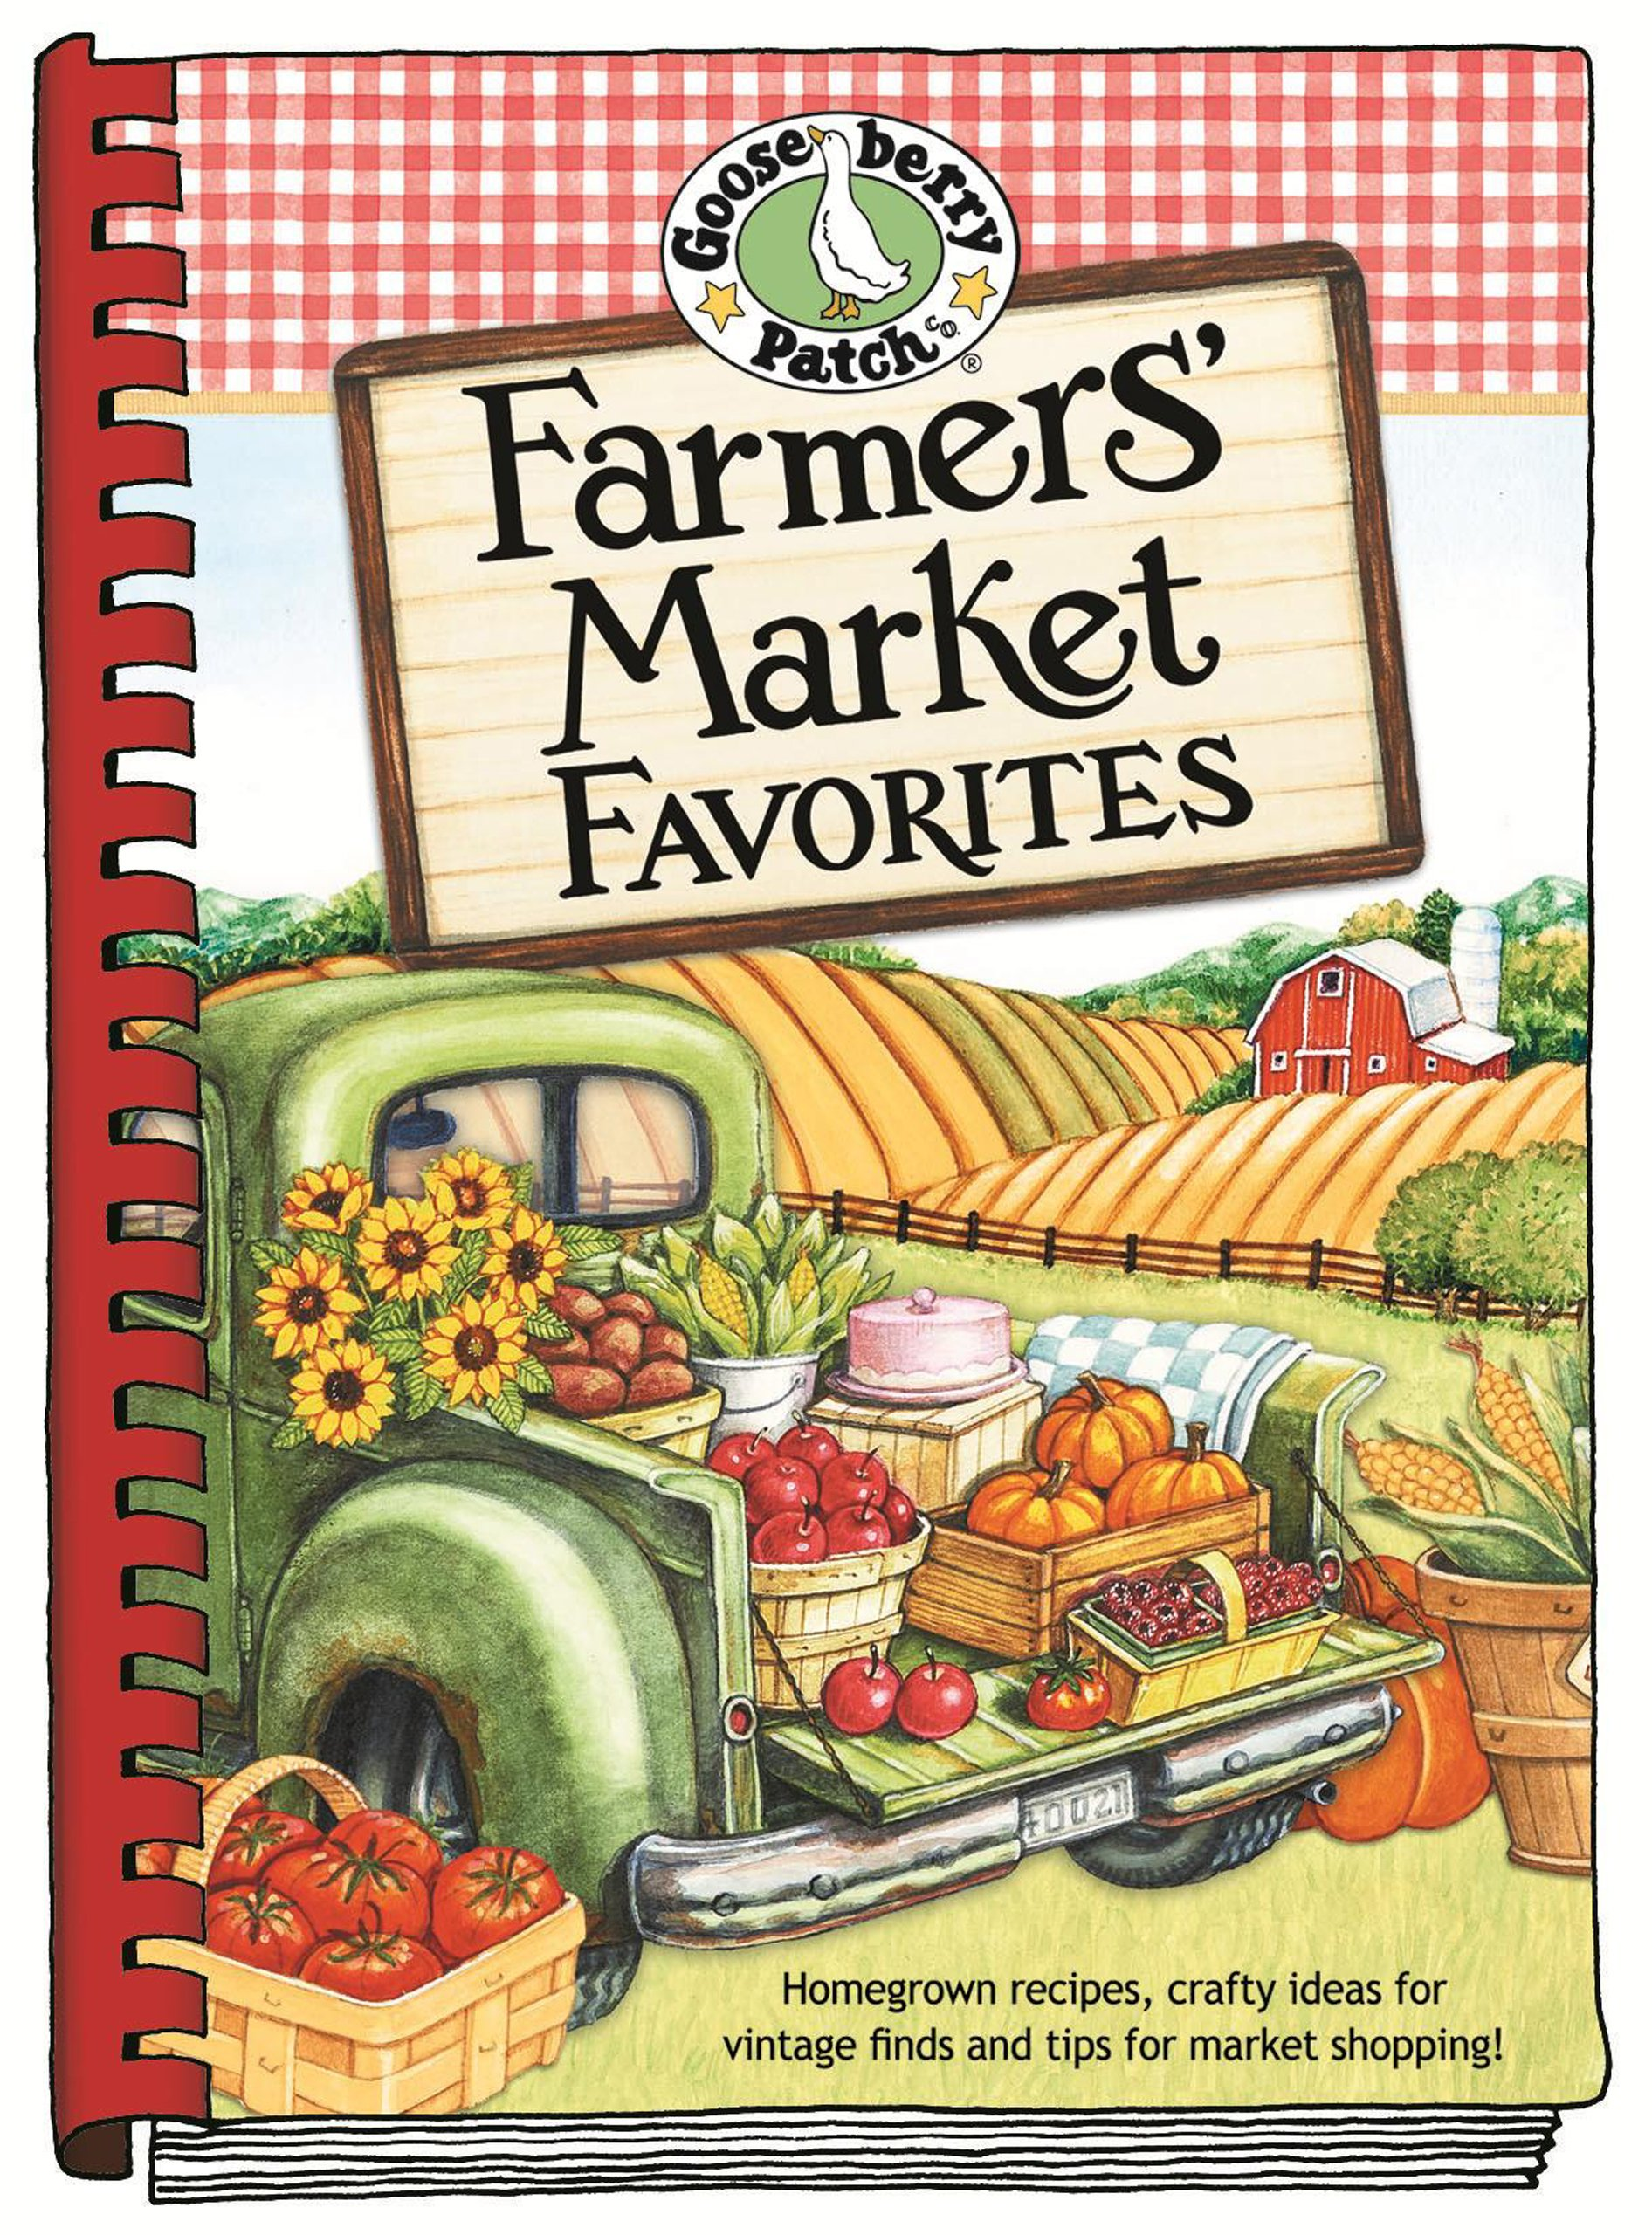 Farmers' Market Favorites (Everyday Cookbook Collection) by Brand: Gooseberry Patch